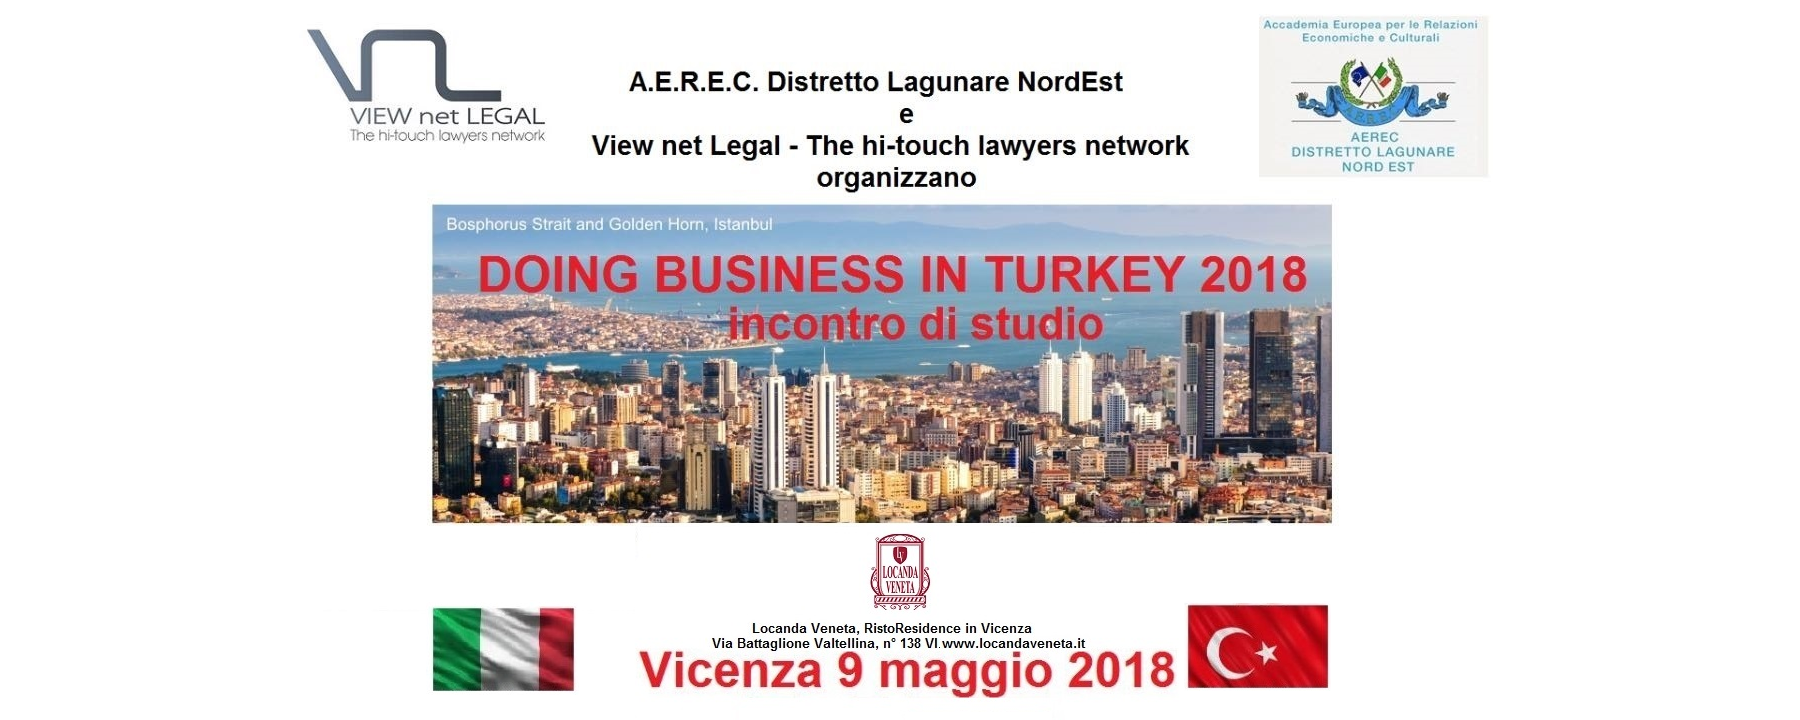 INTERNATIONAL TRADE - 2018.05.09, Vicenza, View net Legal & AEREC Distretto Lagunare - International Business >>> Doing Business in Turkey